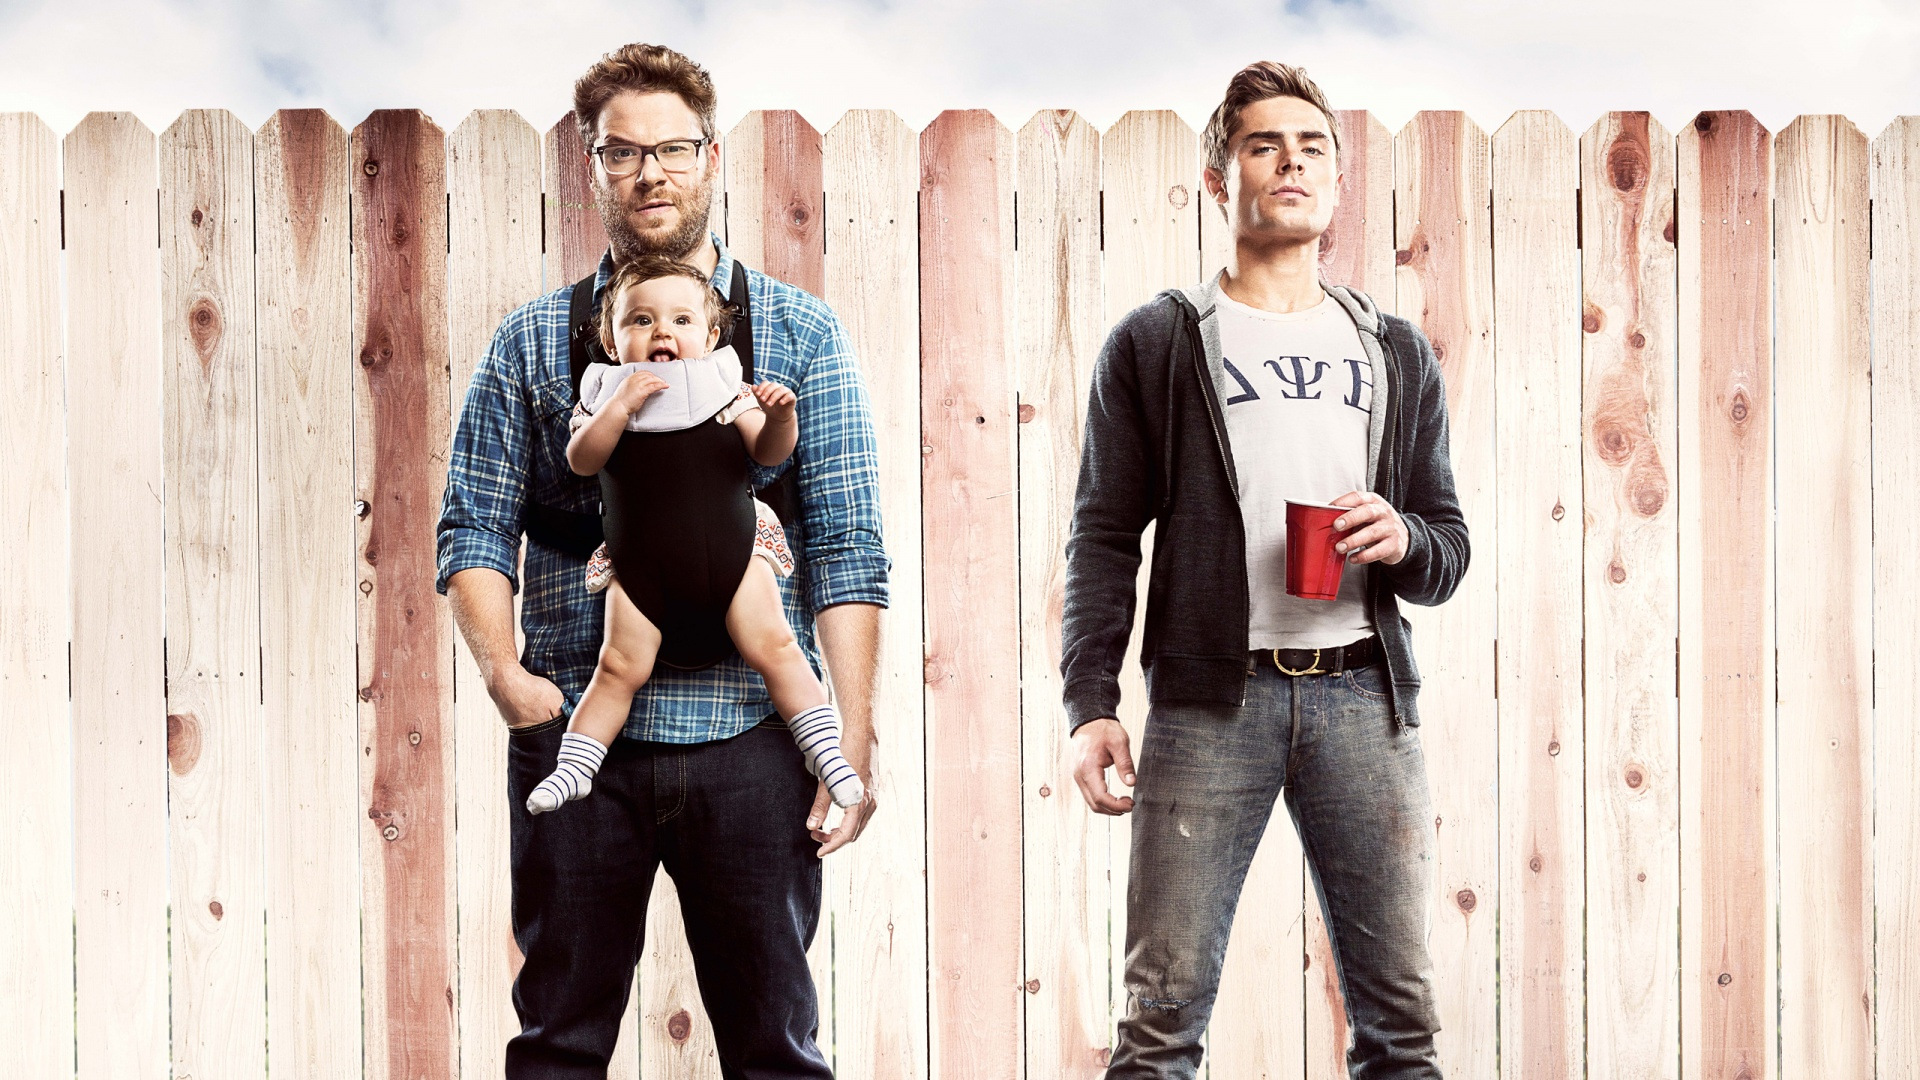 ... x 1440 Original. Description: Download Neighbors 2014 Movie ...